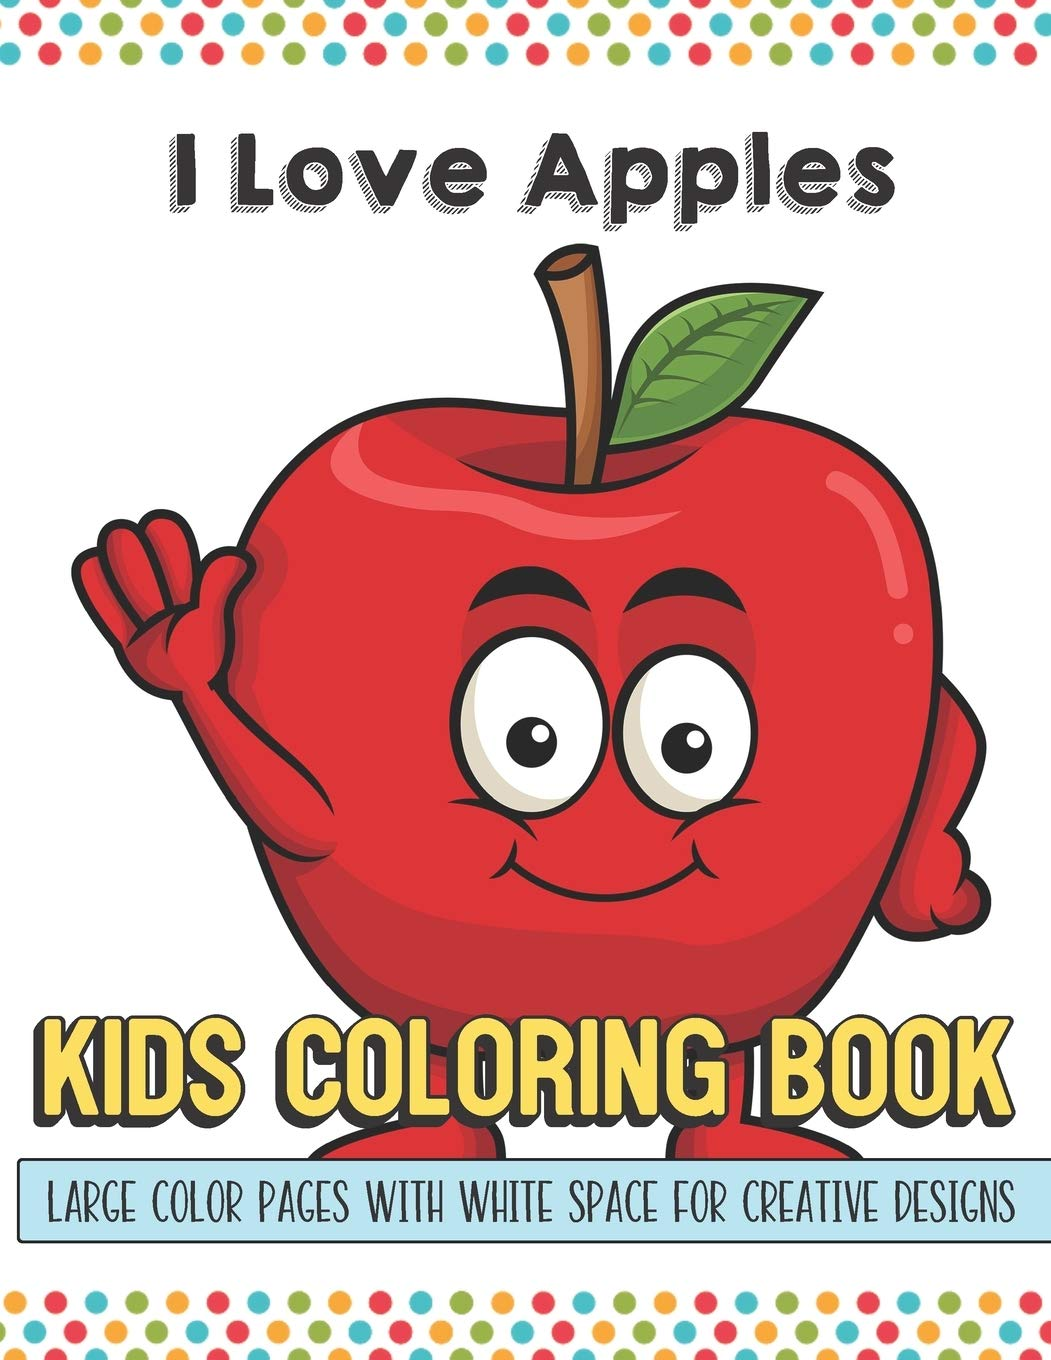 I Love Apples Kids Coloring Book Large Color Pages With White Space For Creative Designs Fun Activity Book For Travel At Home Or While At School Perfect For All Ages Publishing Greetingpages